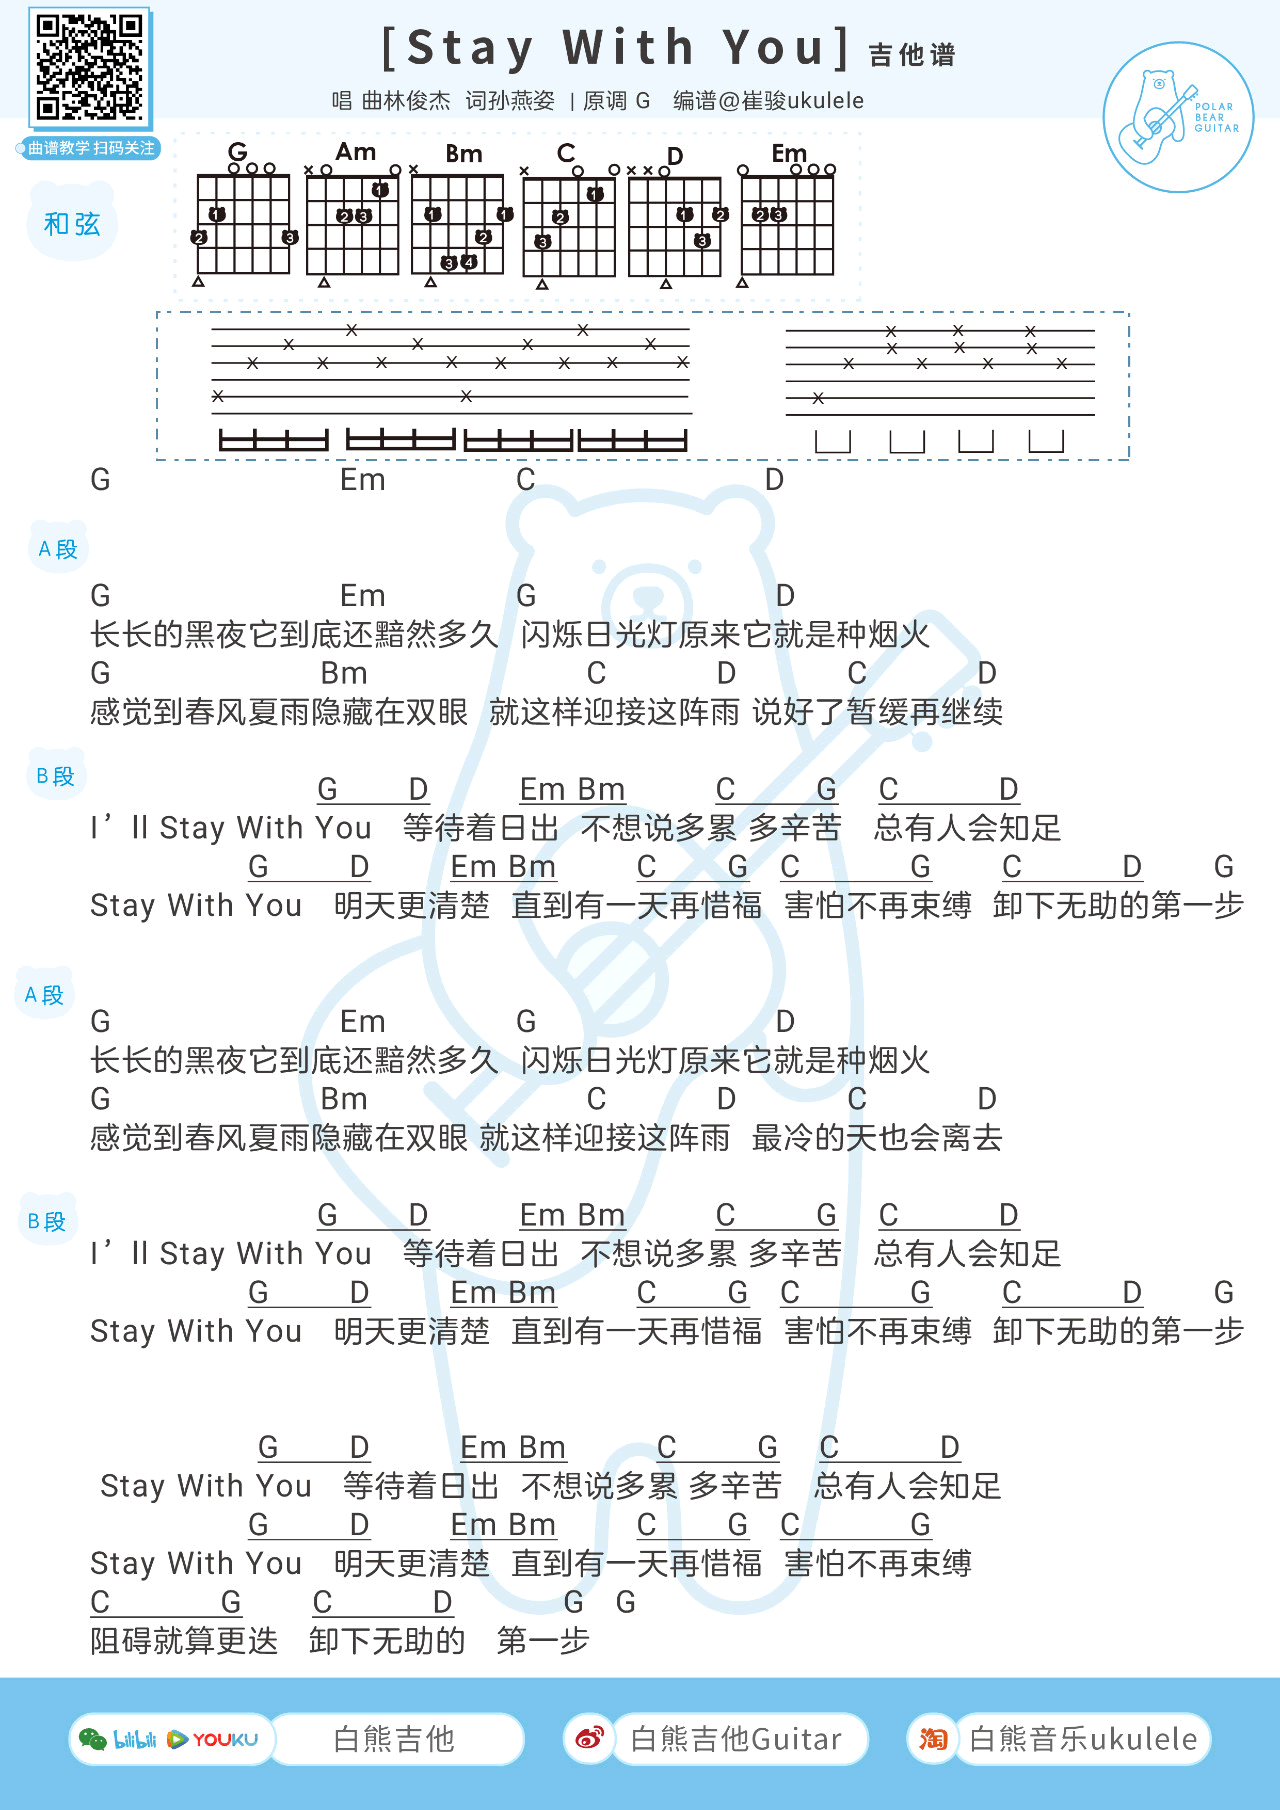 Stay With You吉他谱_林俊杰/孙燕姿_弹唱图片谱